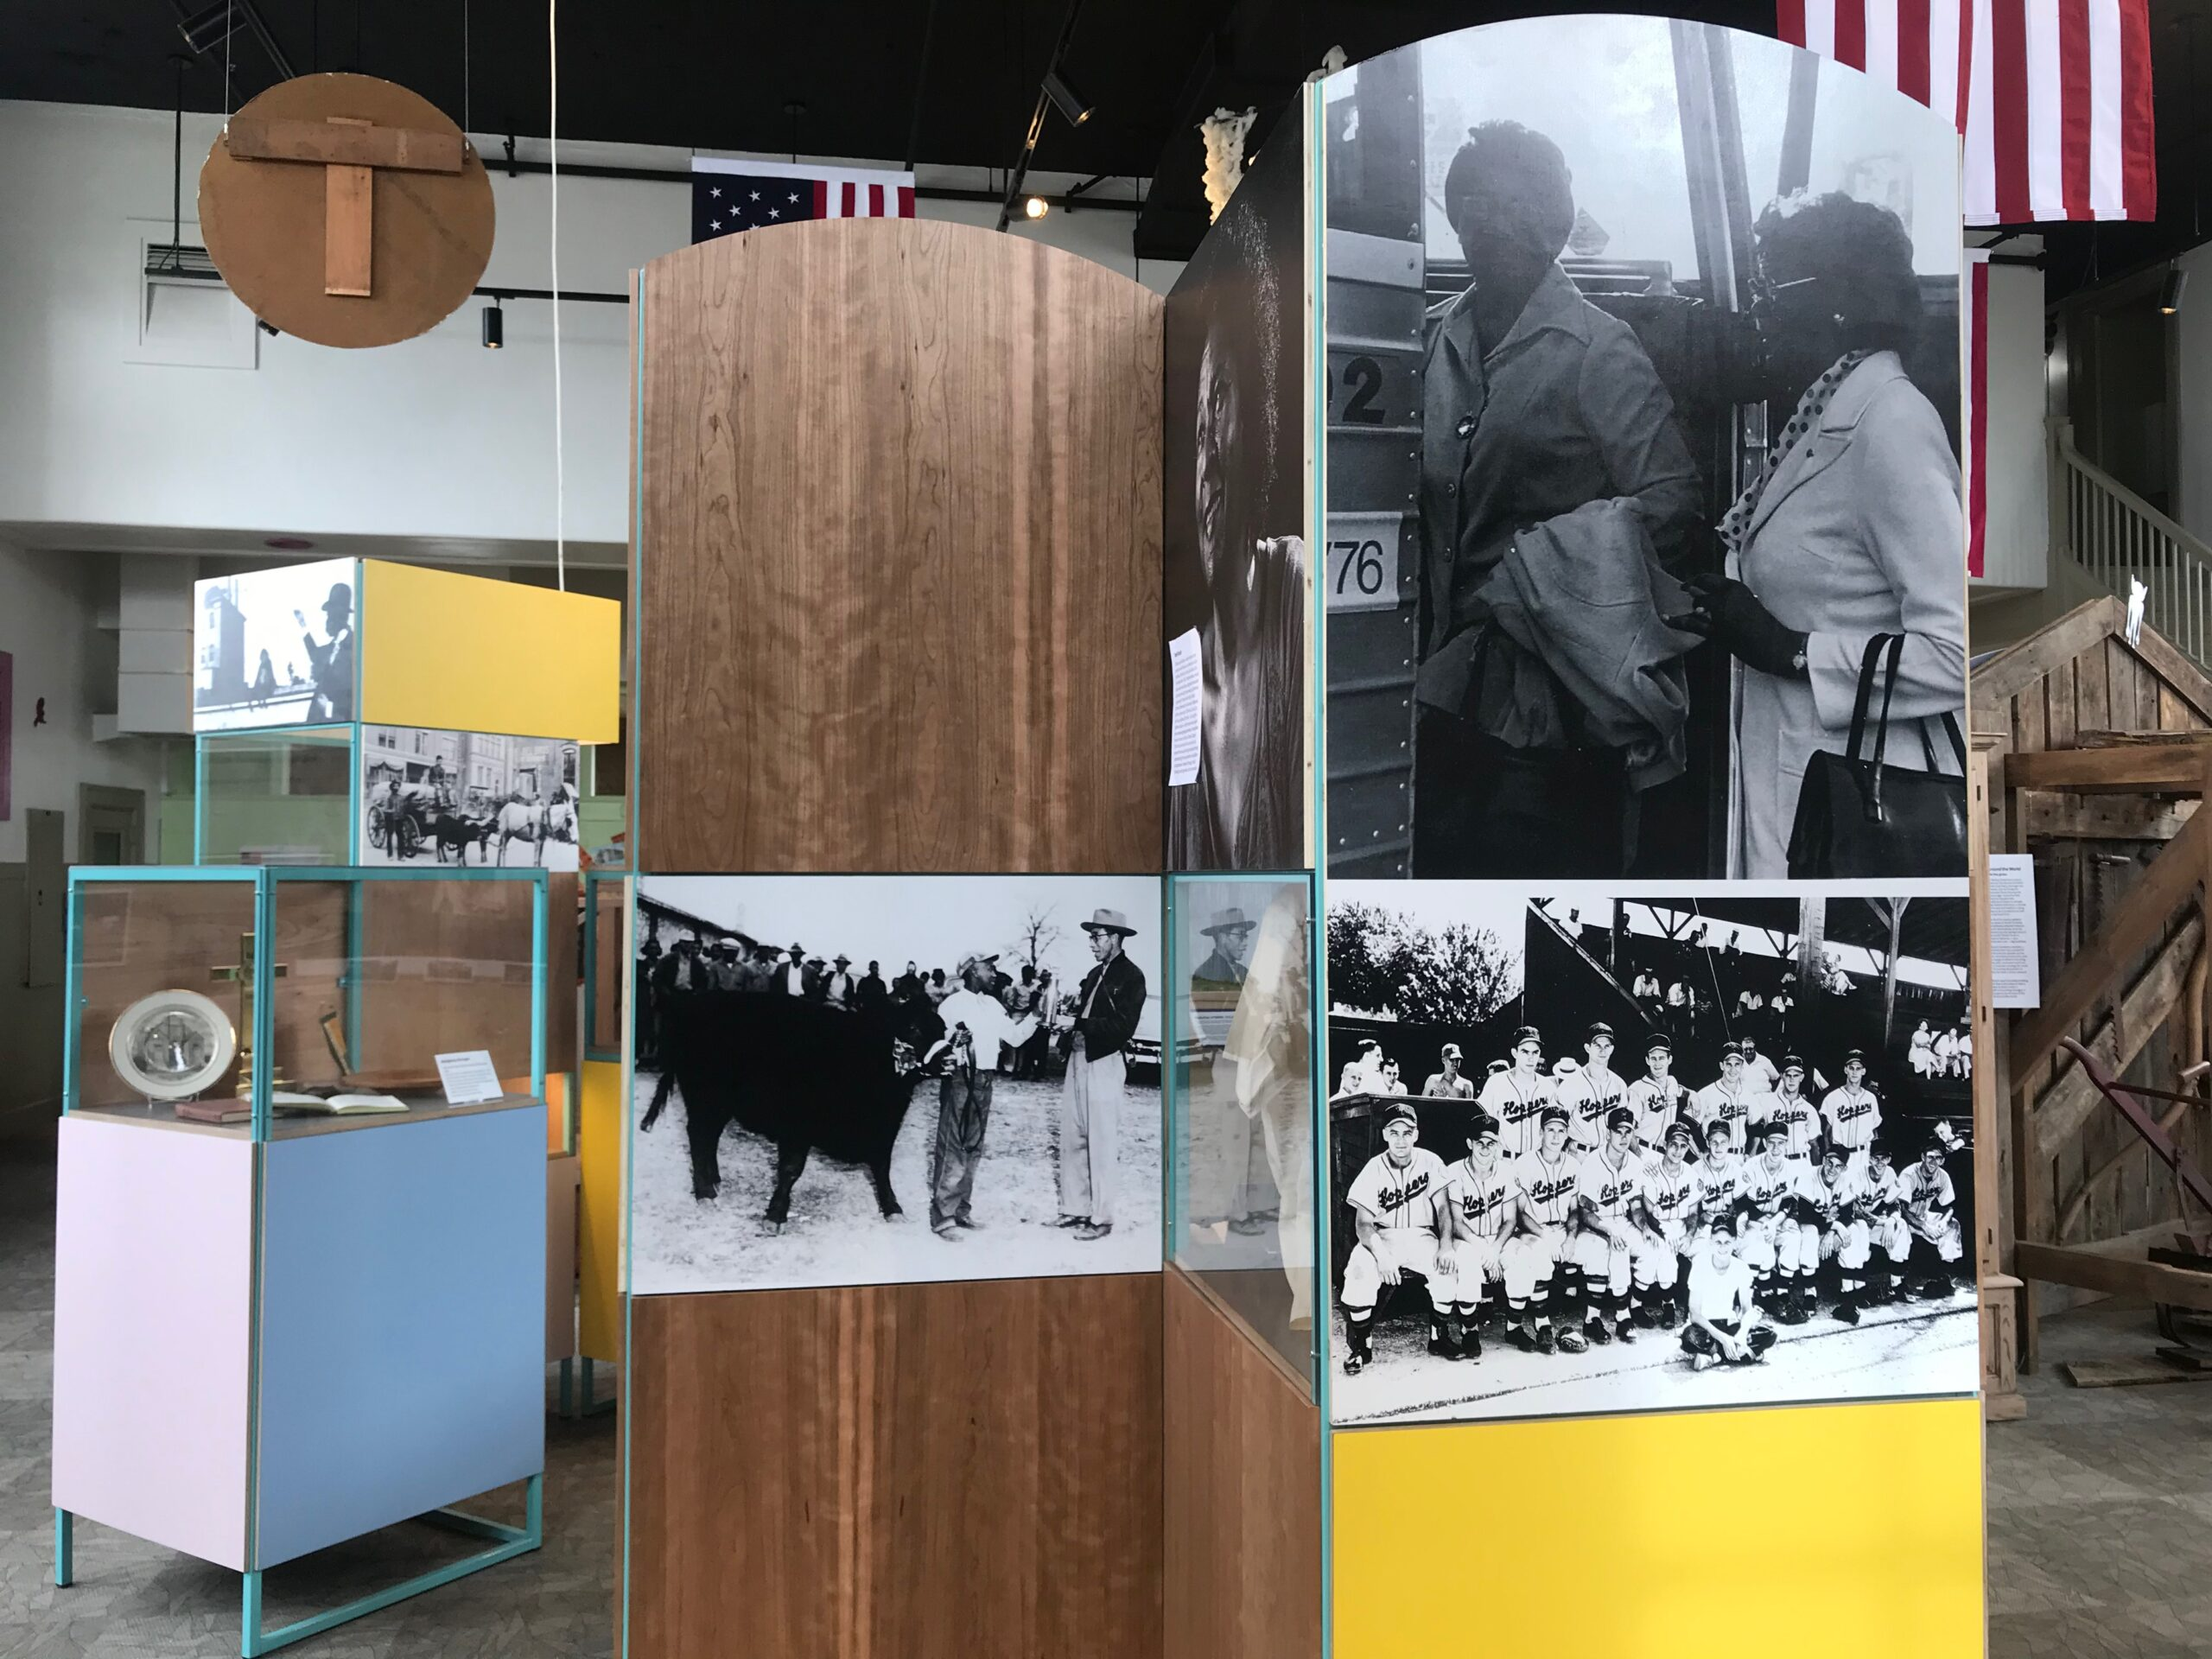 Photos from the museum catalog documenting life around Hopkinsville help the space feel more inclusive.